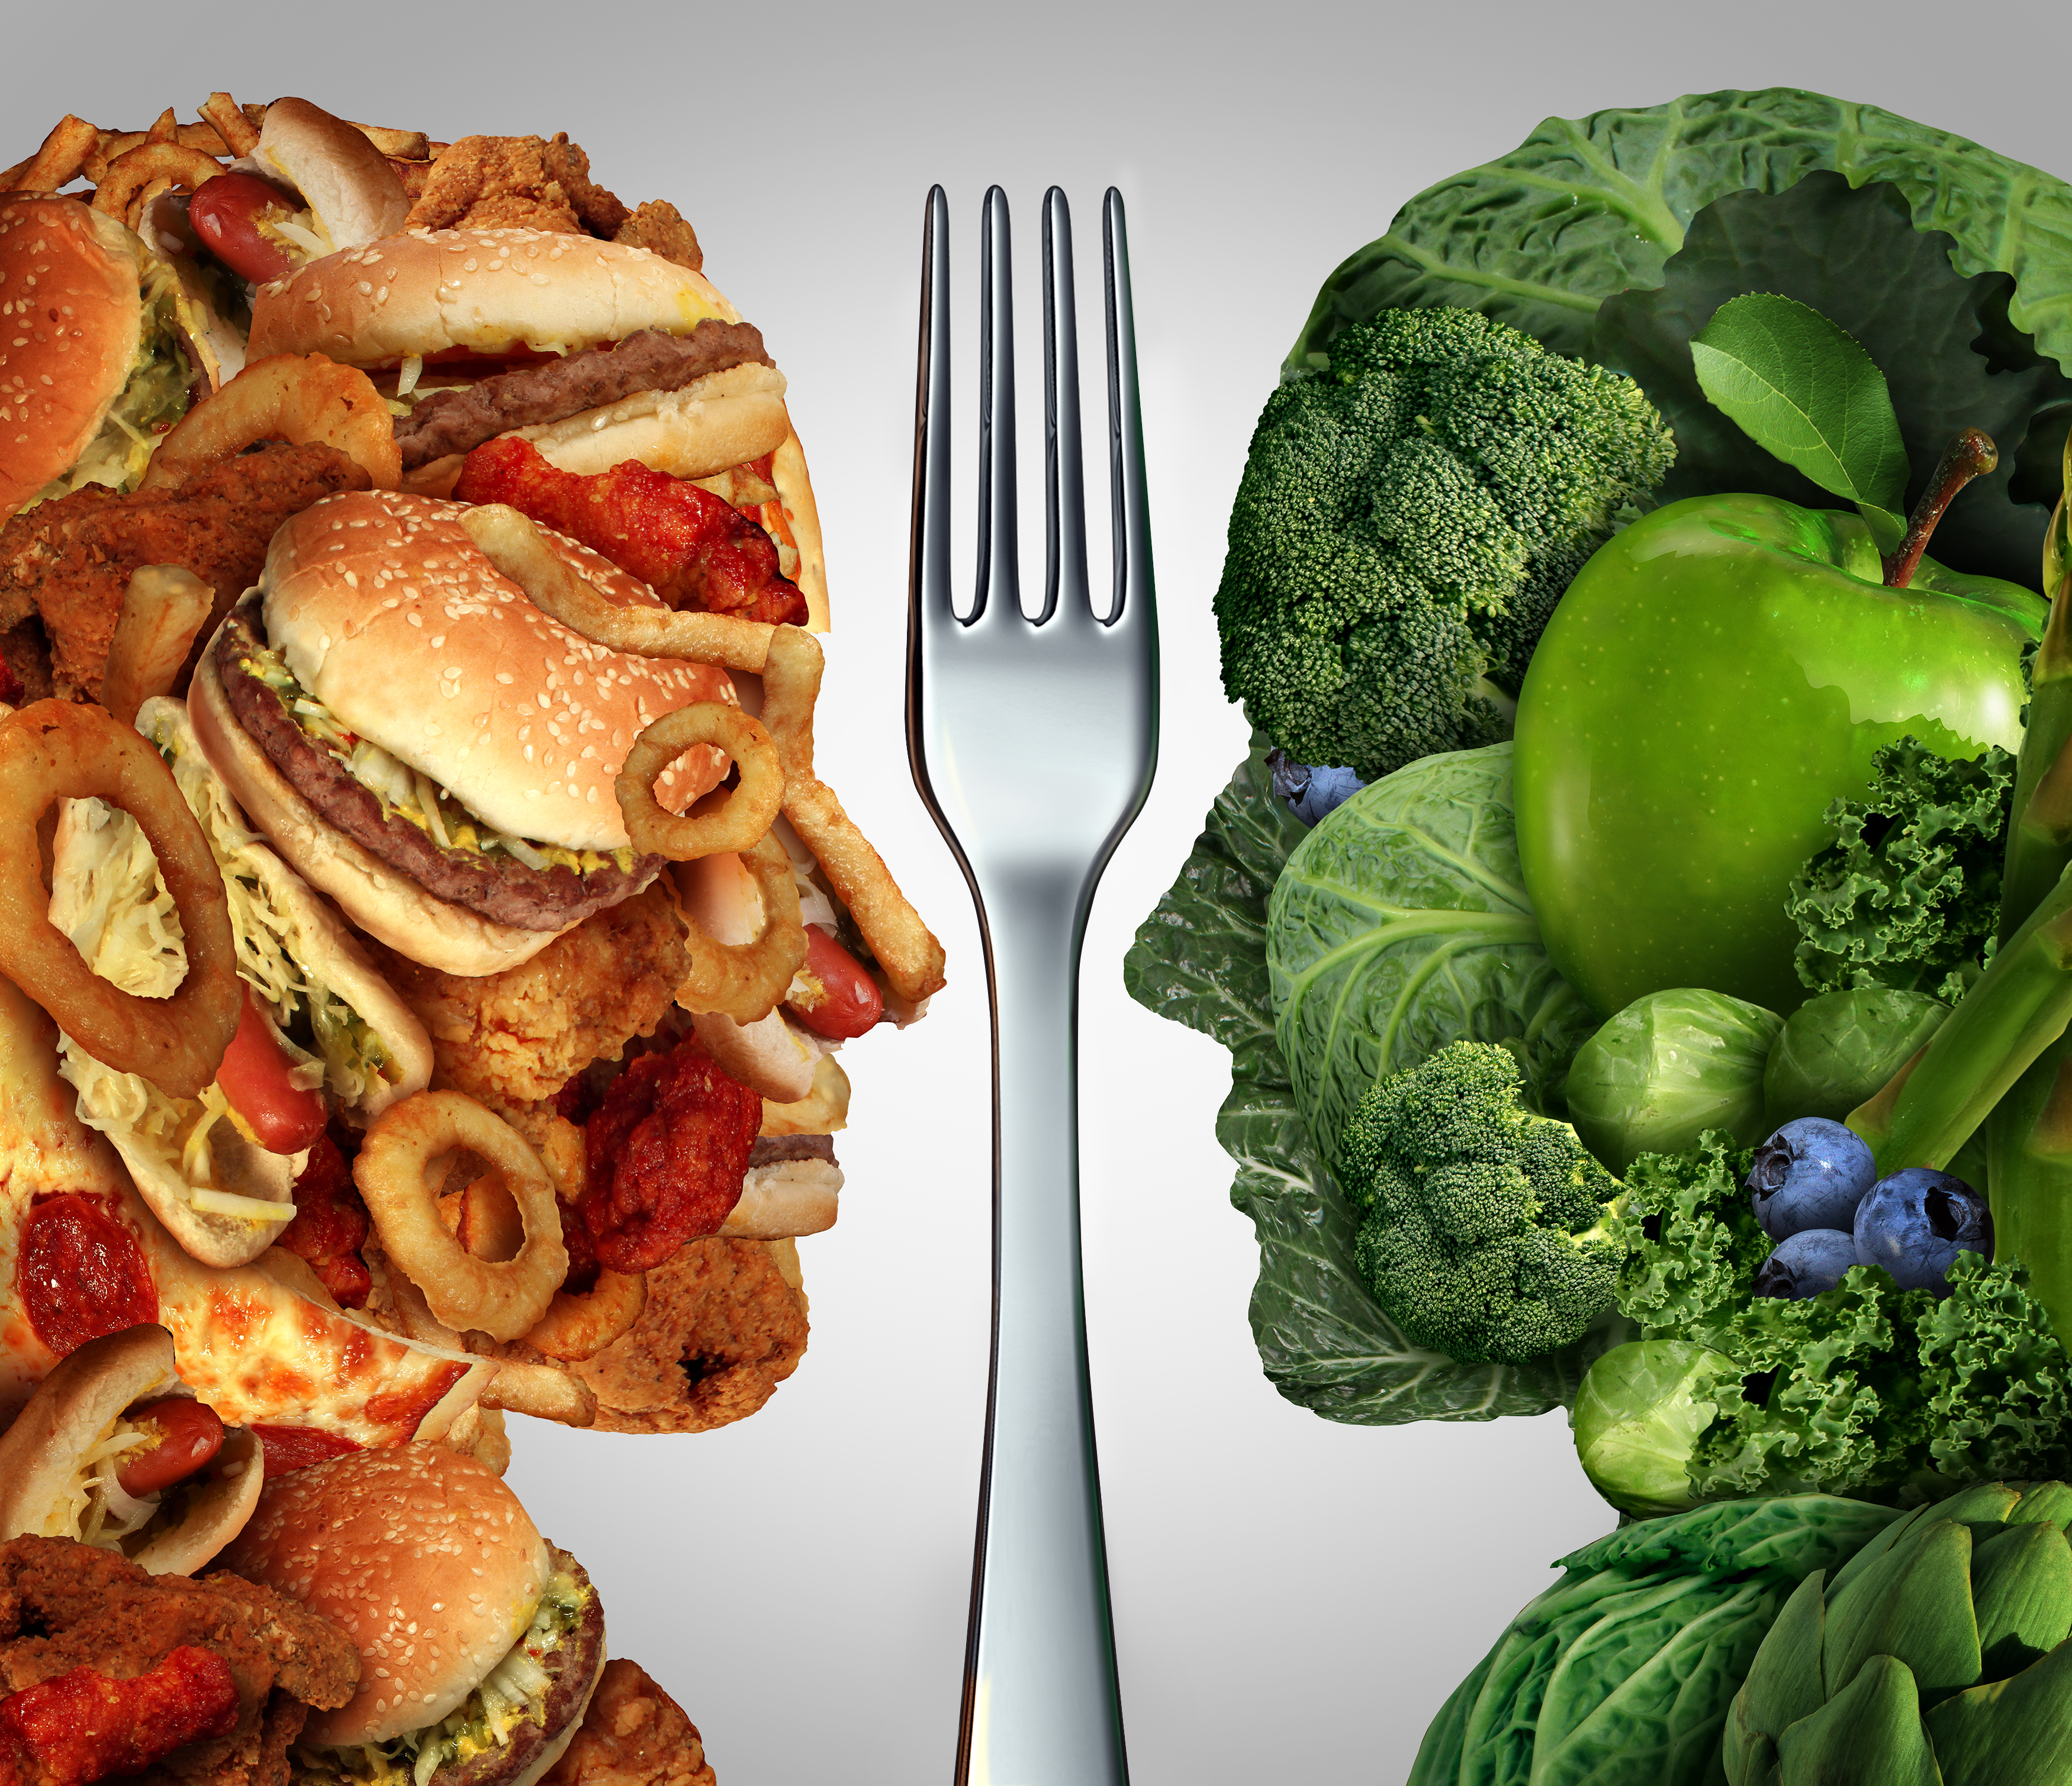 Fruits and vegetables are good for health, then: why are the consumption of these foods so low in Colombia?